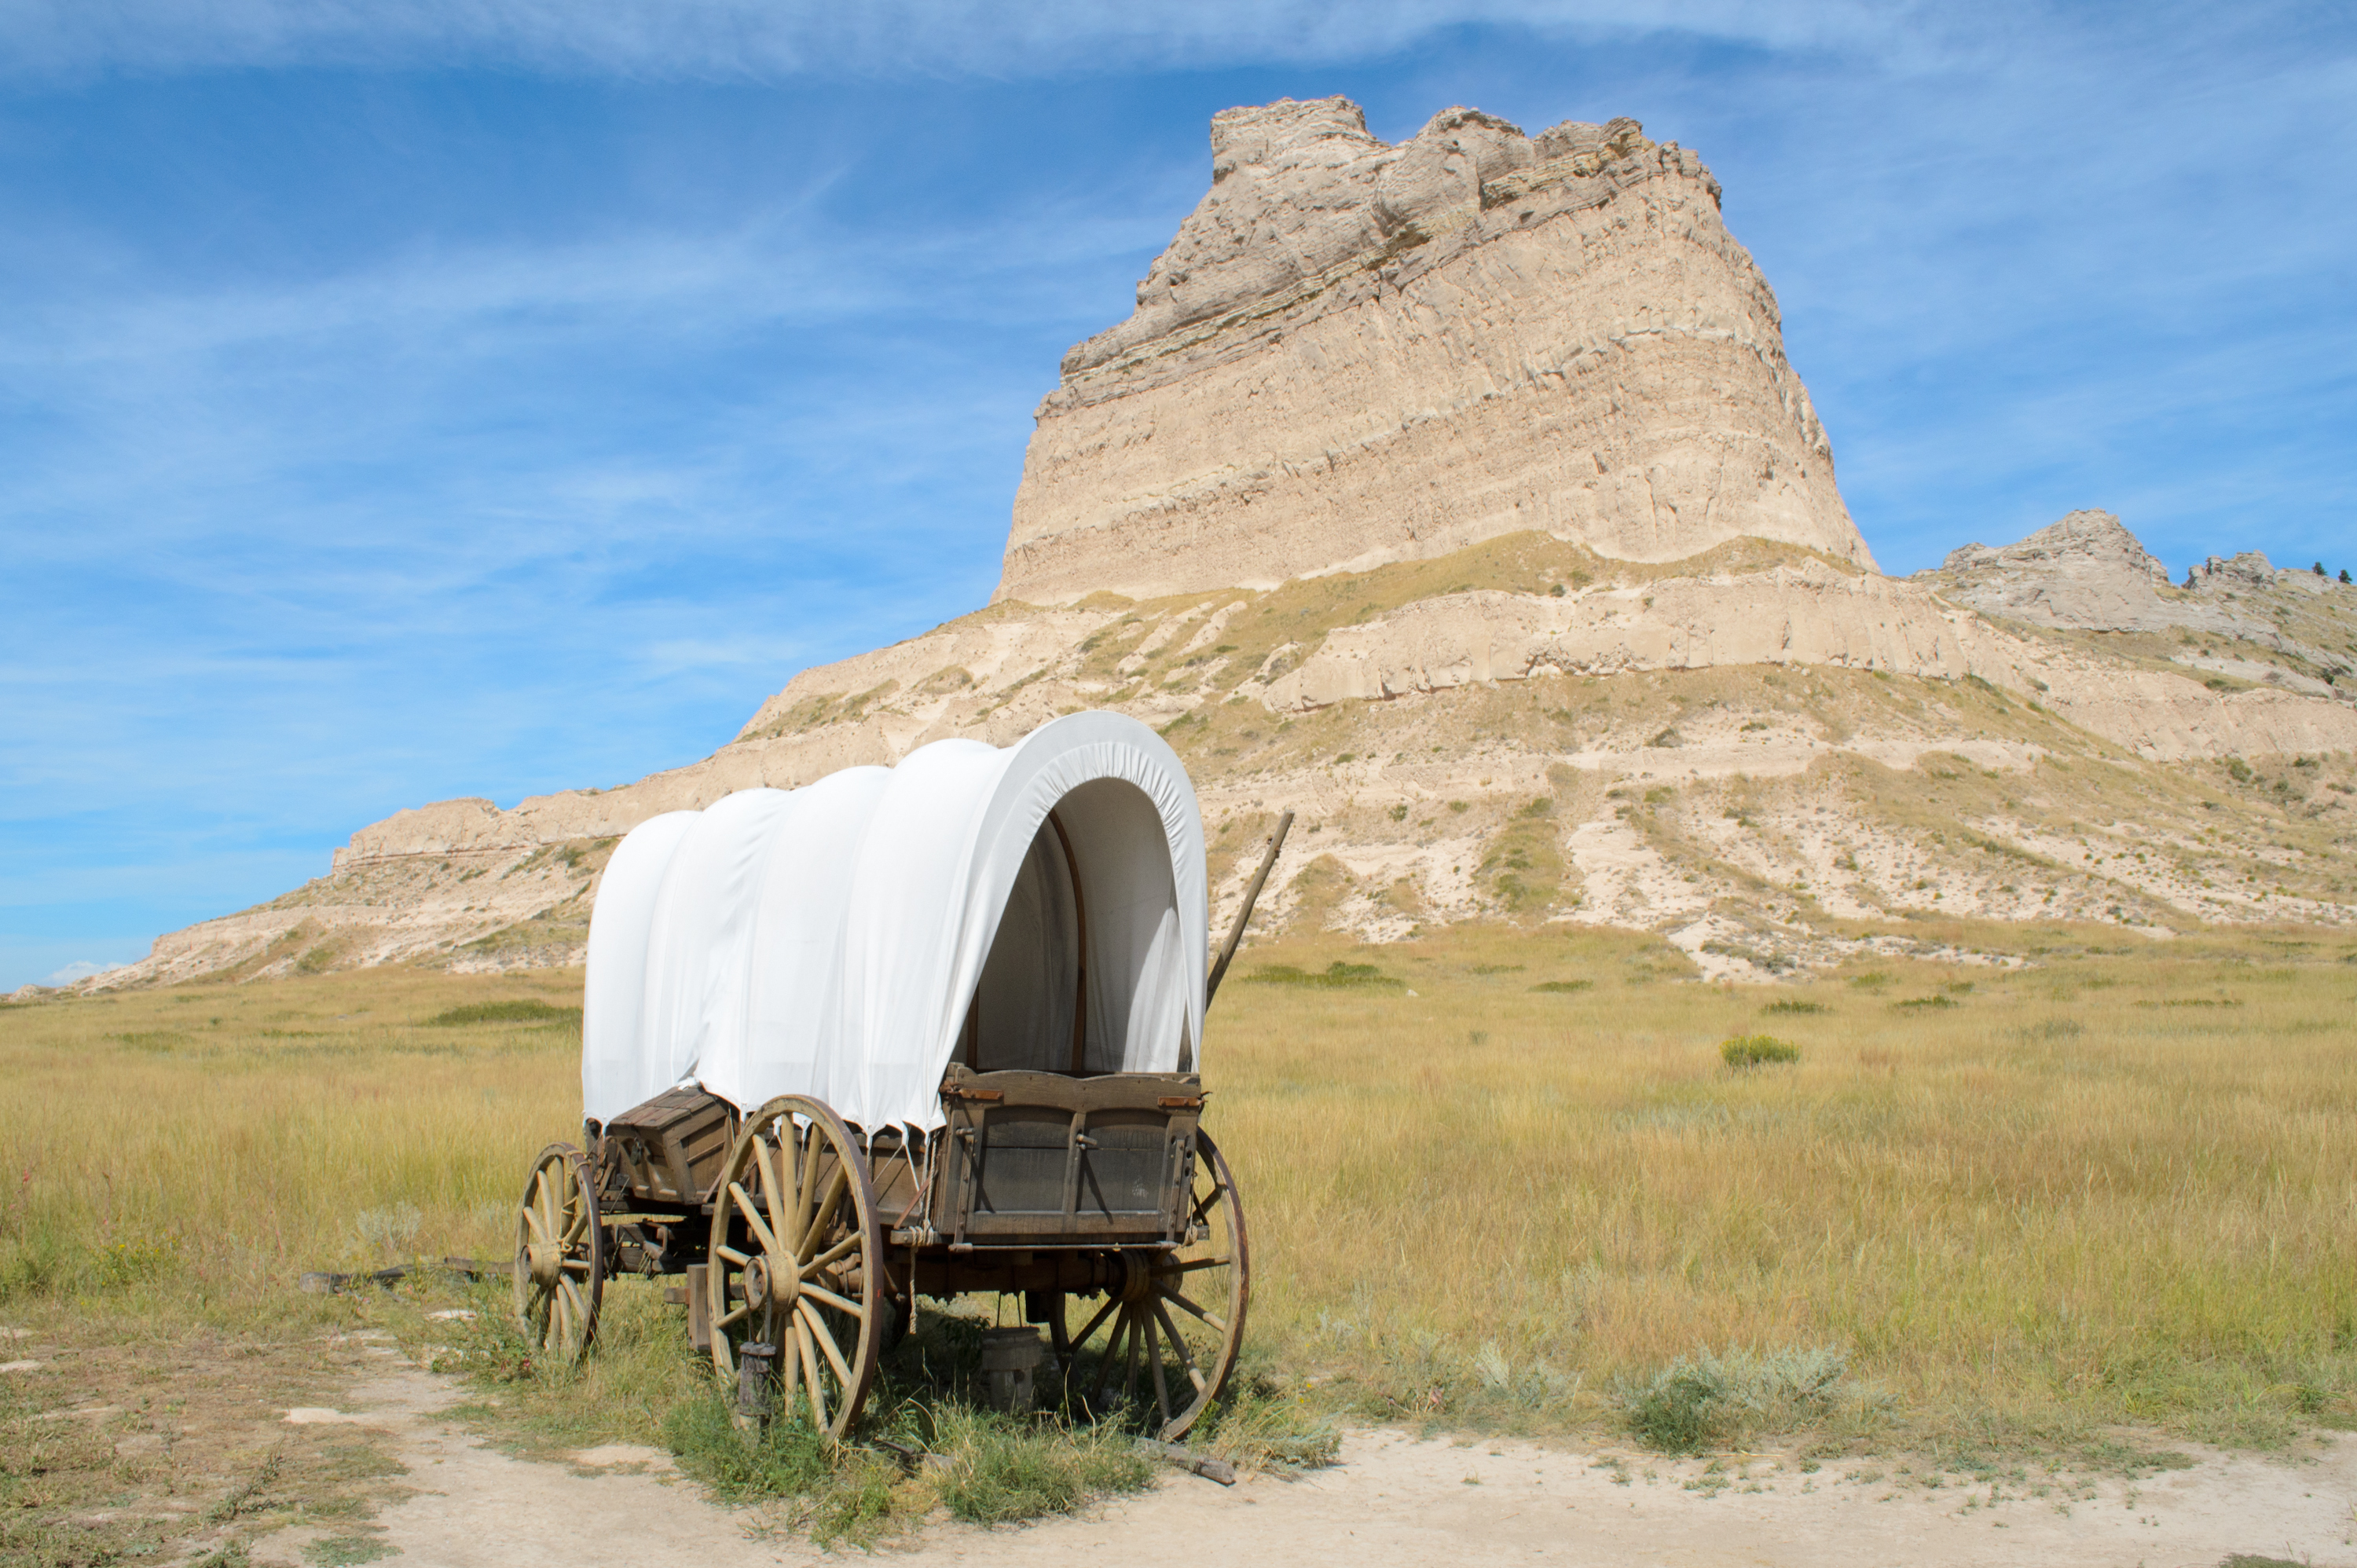 A photo of a covered wagon in open terrain on a clear day, with a large rock cropping in the background.